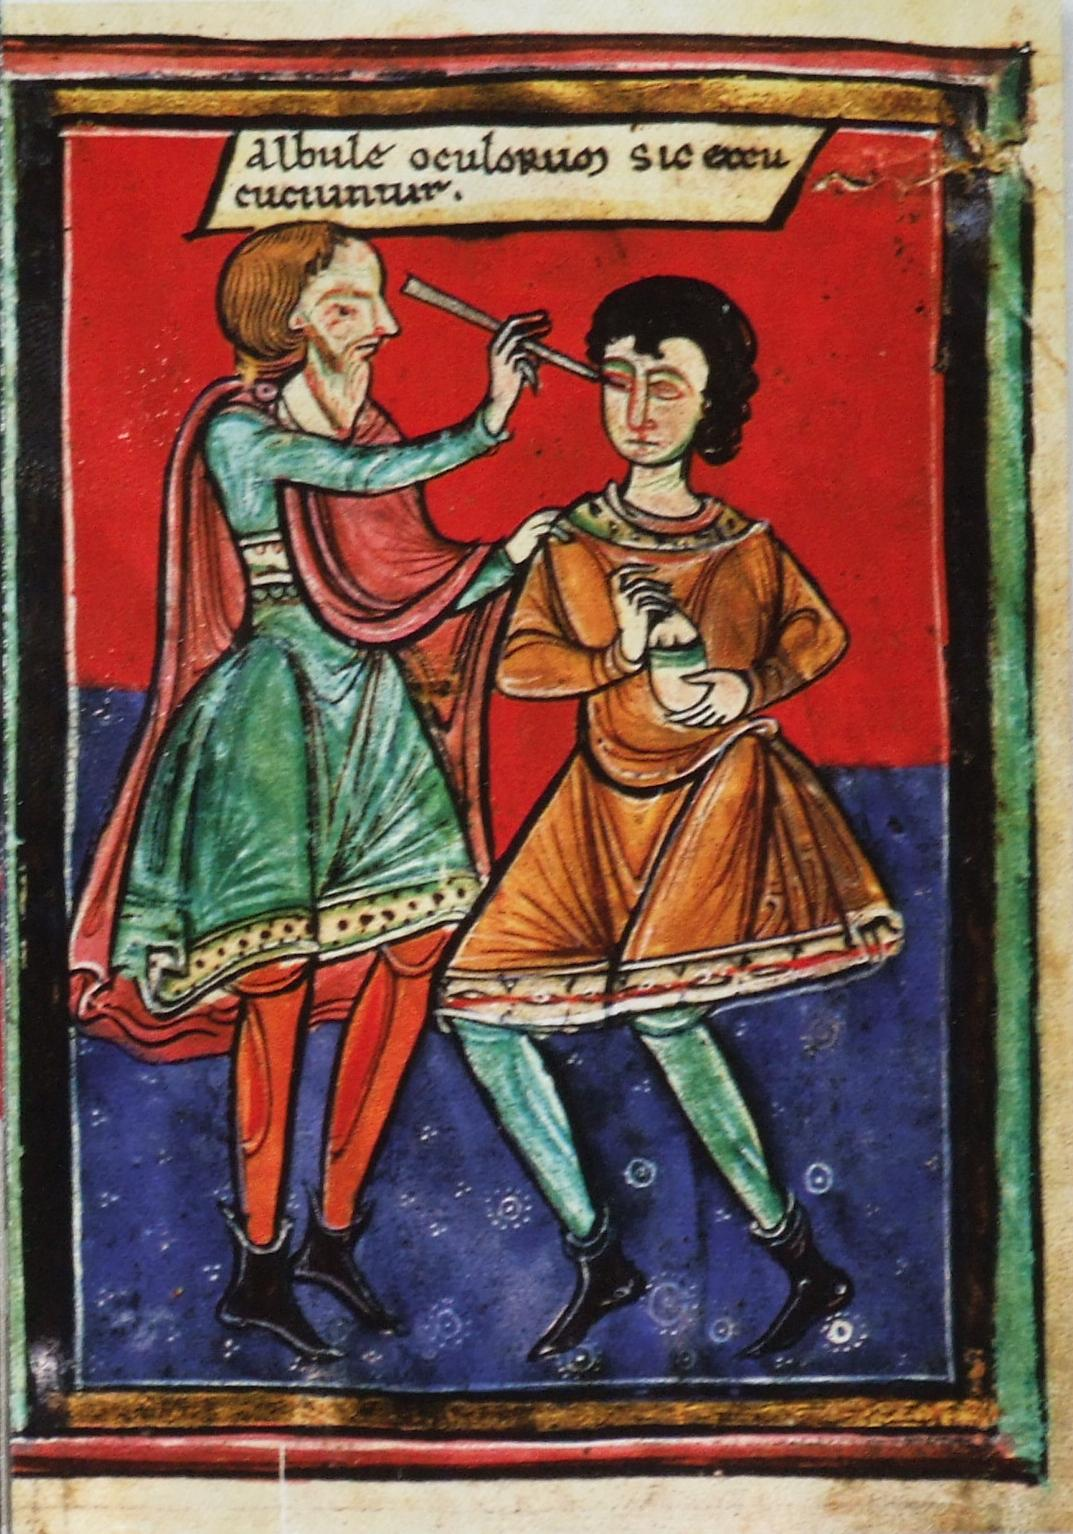 Surgery being performed on the eye. 1195 AD.